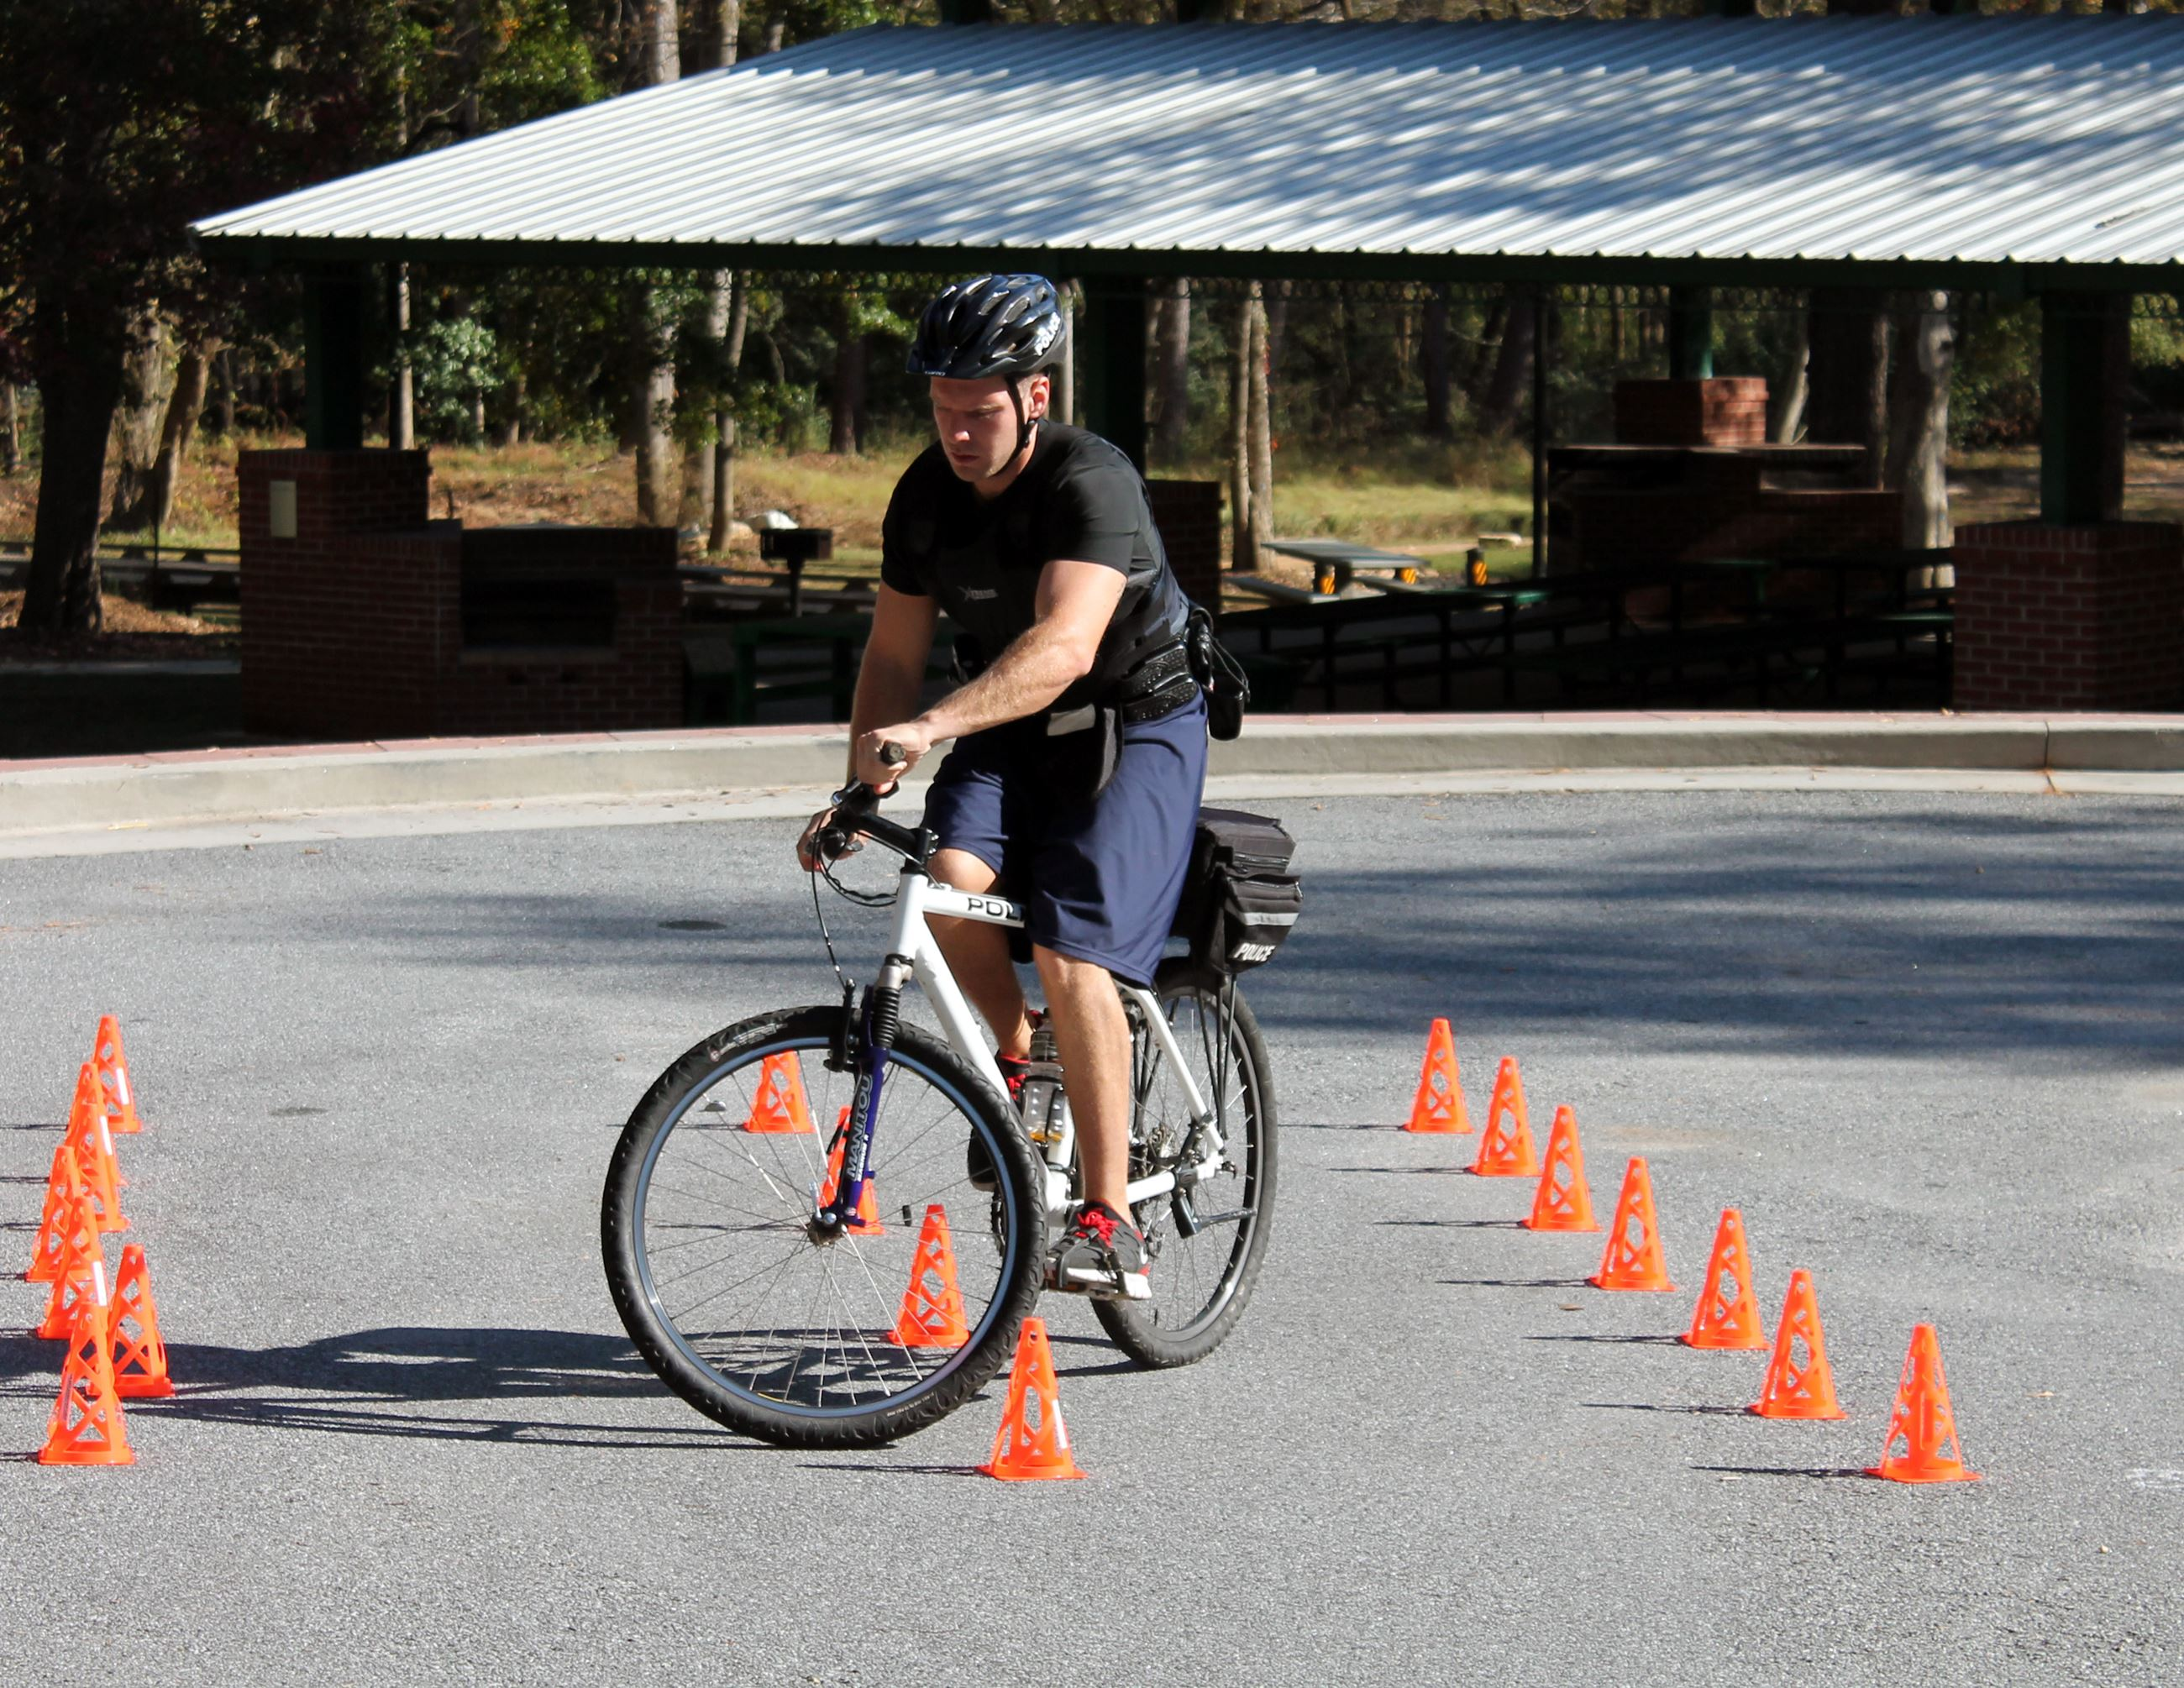 An officer on a bicycle undergoing Bicycle Patrol Training.